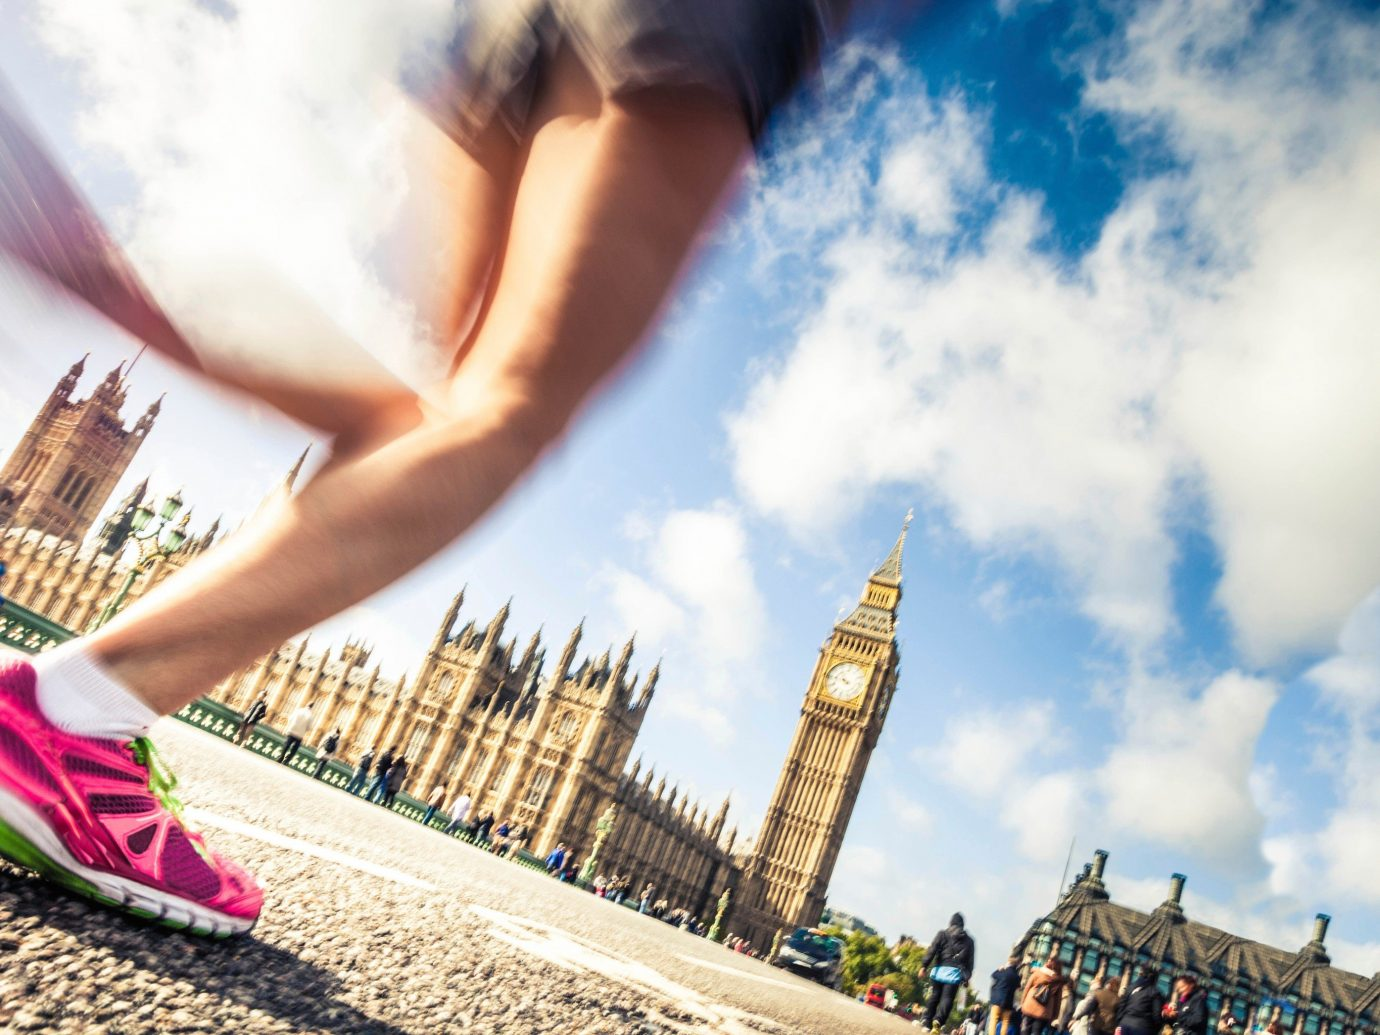 Budget person outdoor sky human action photograph photography jumping sports physical exercise running